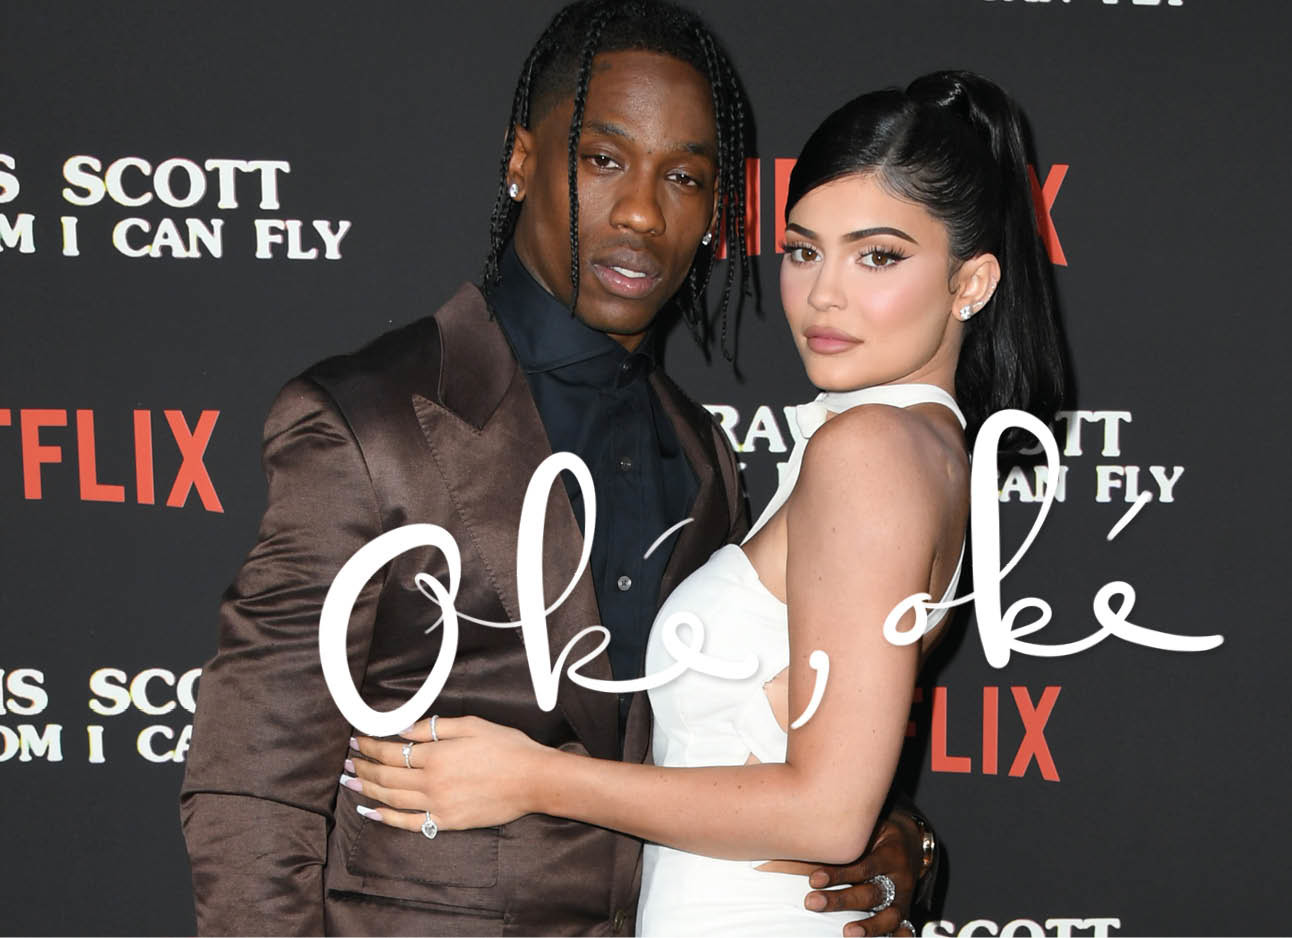 kylie jjennner en travis scott play boy